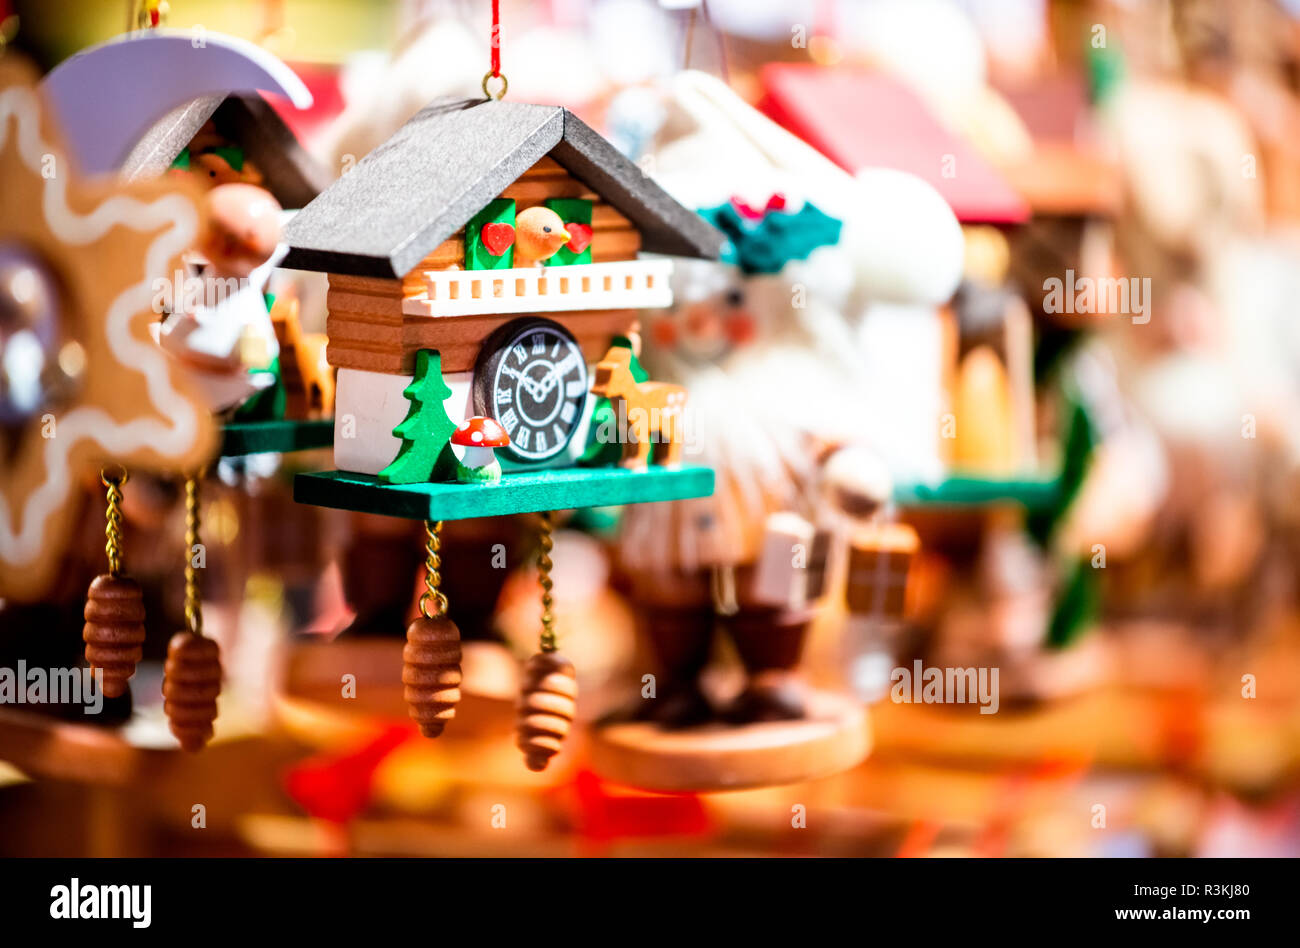 Strasbourg, France. Marche de Noel decorations in Strasbourg, Christmas Market in Alsace. - Stock Image